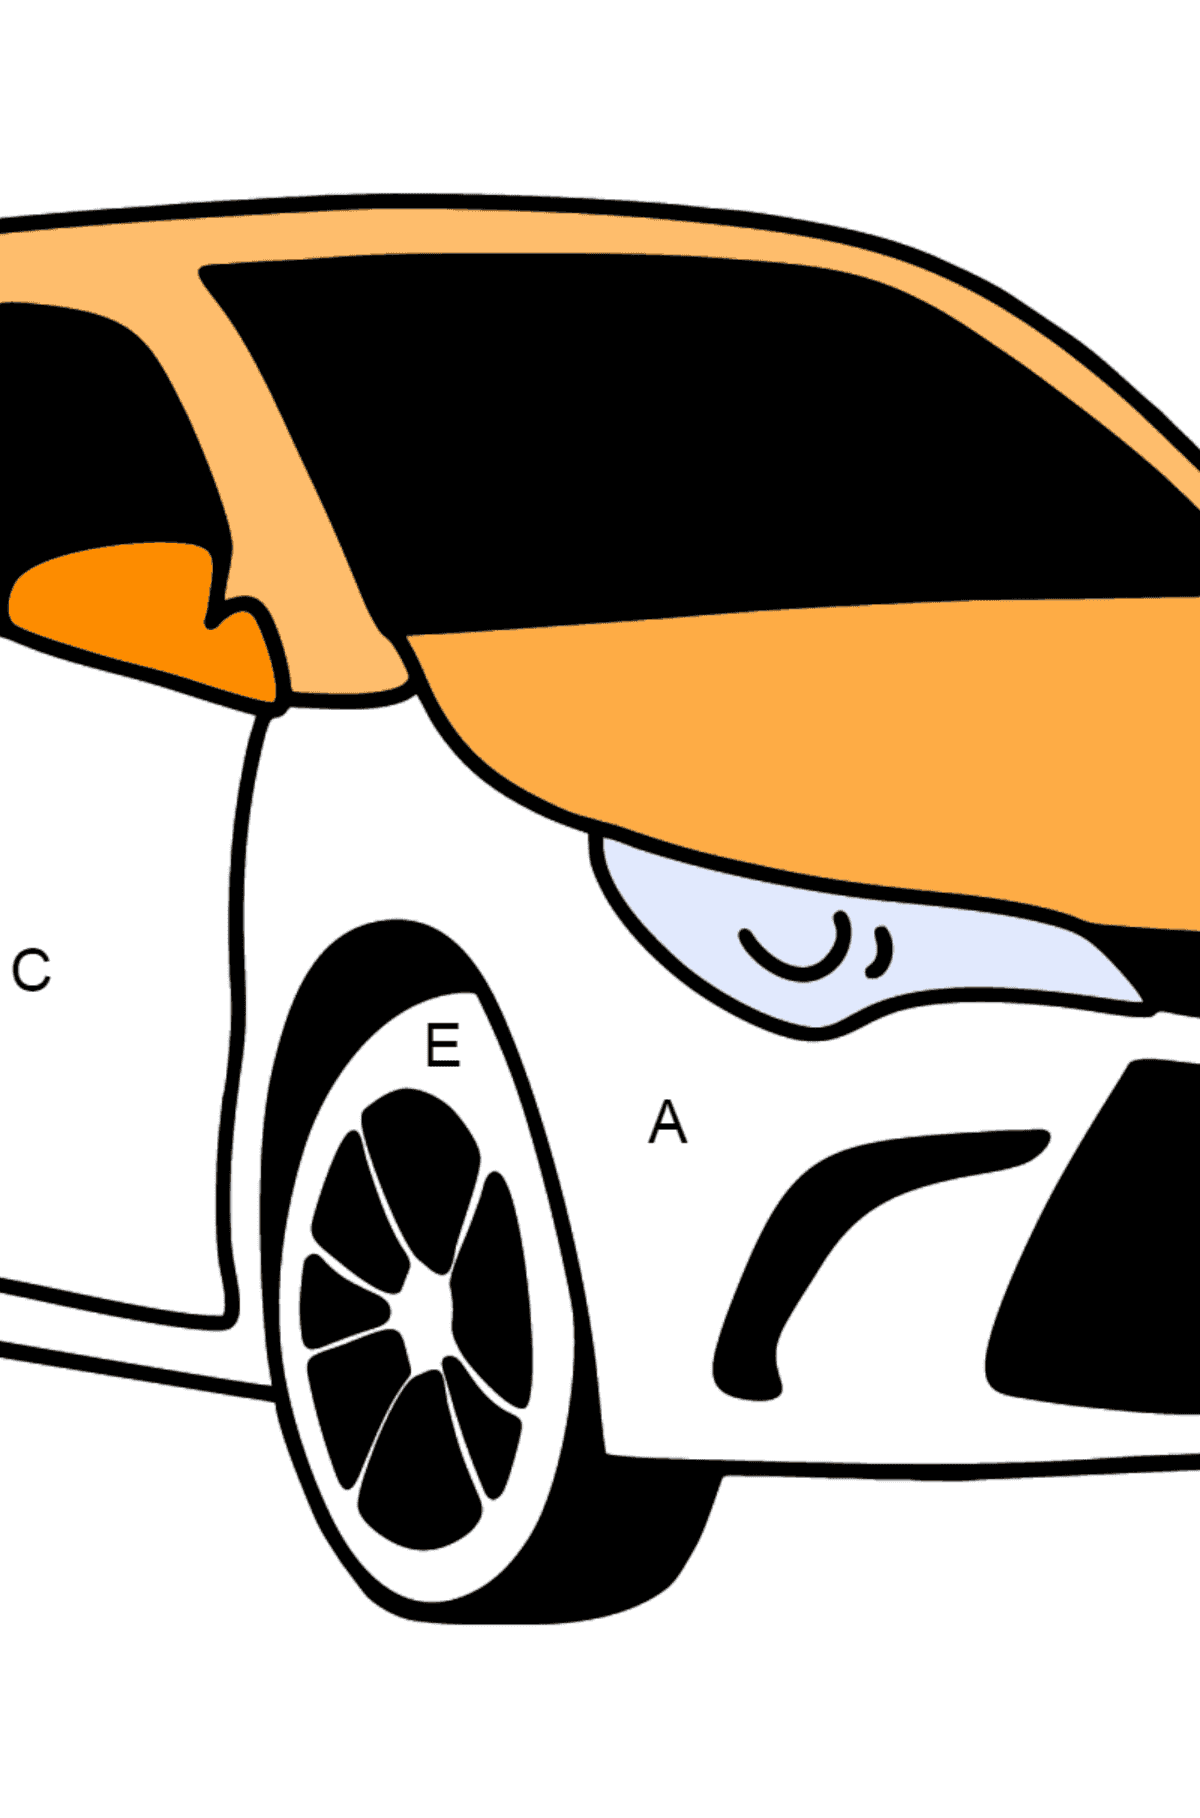 Toyota Camry coloring page - Coloring by Letters for Kids